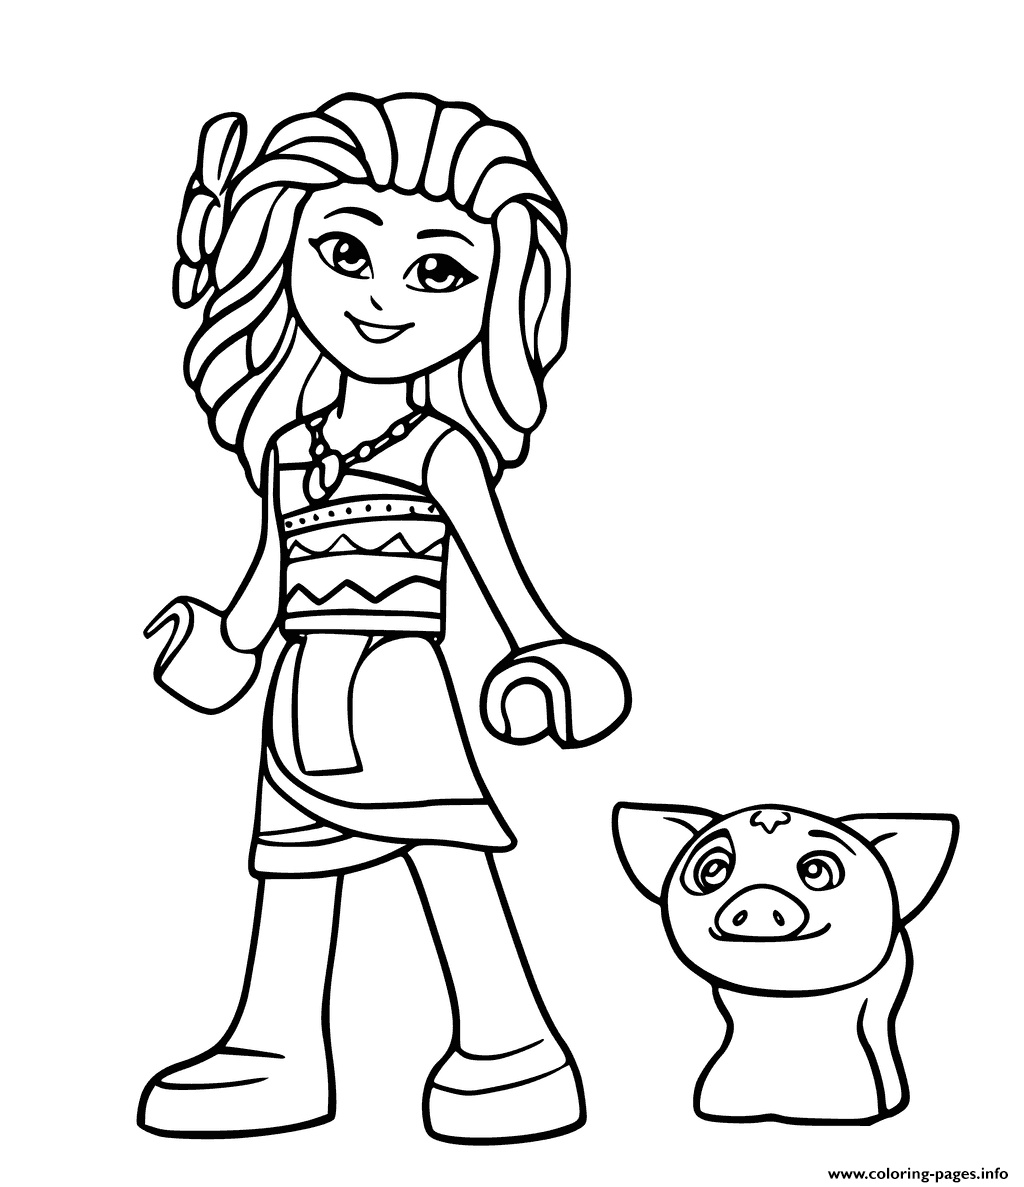 Lego Moana And Pig Pua From Disney coloring pages